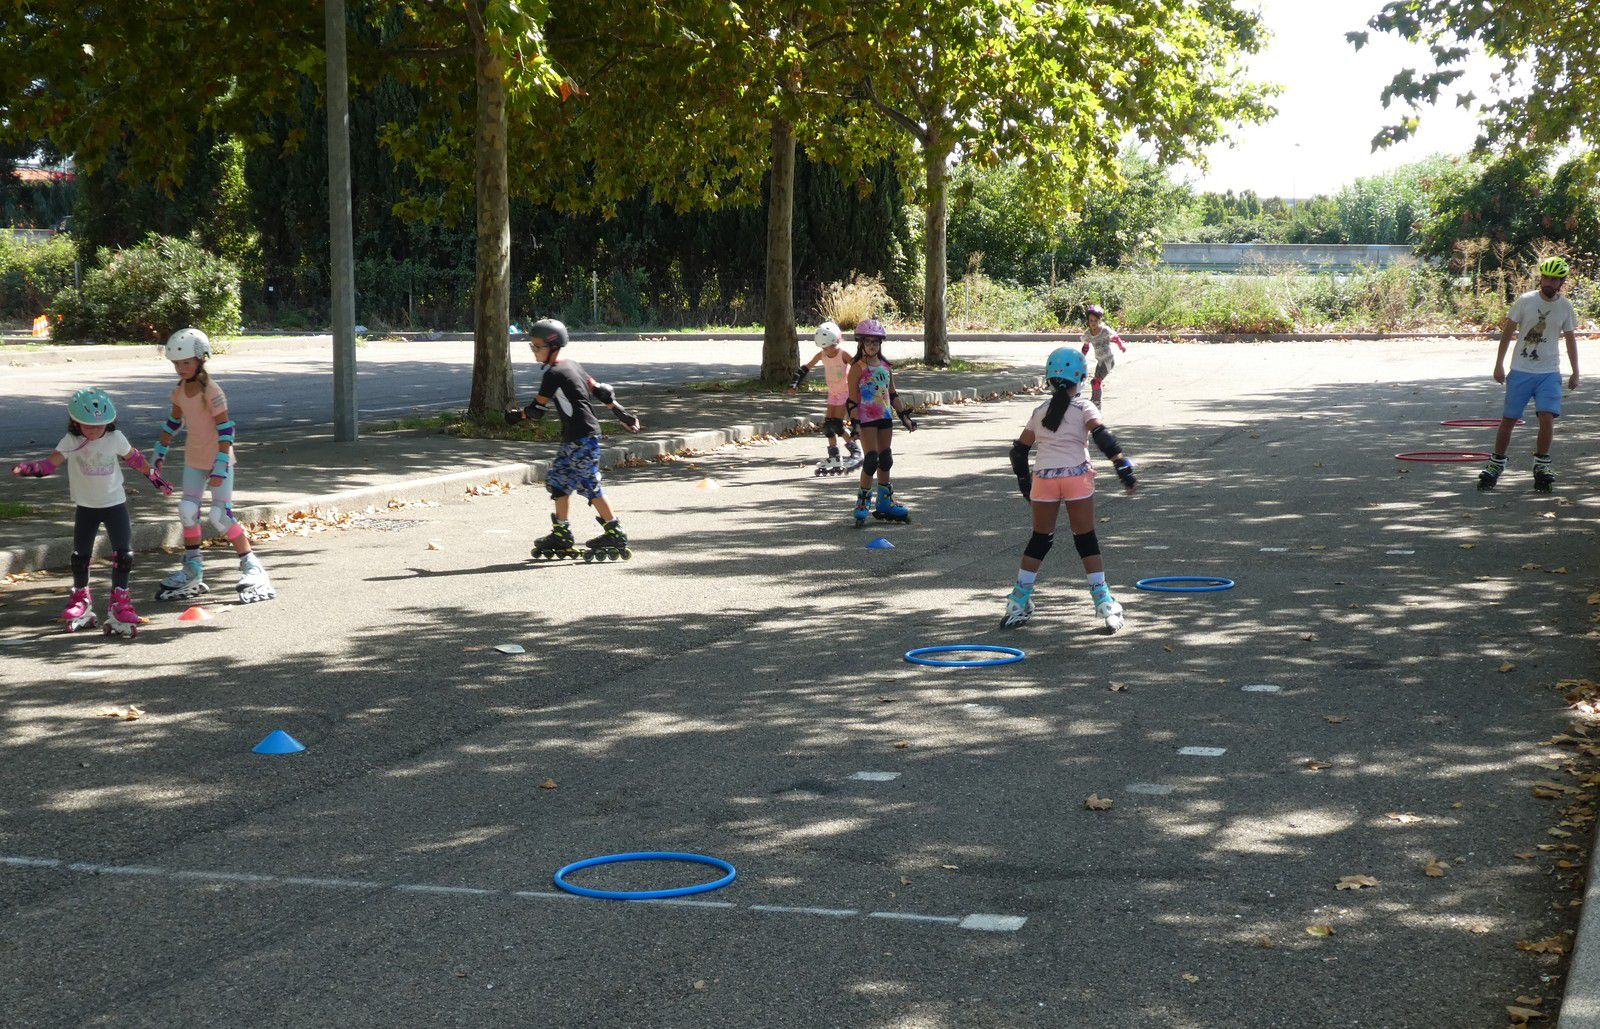 Club de sport, nimes, gard, roller, nimes, enfant, initiation, sport, faire,